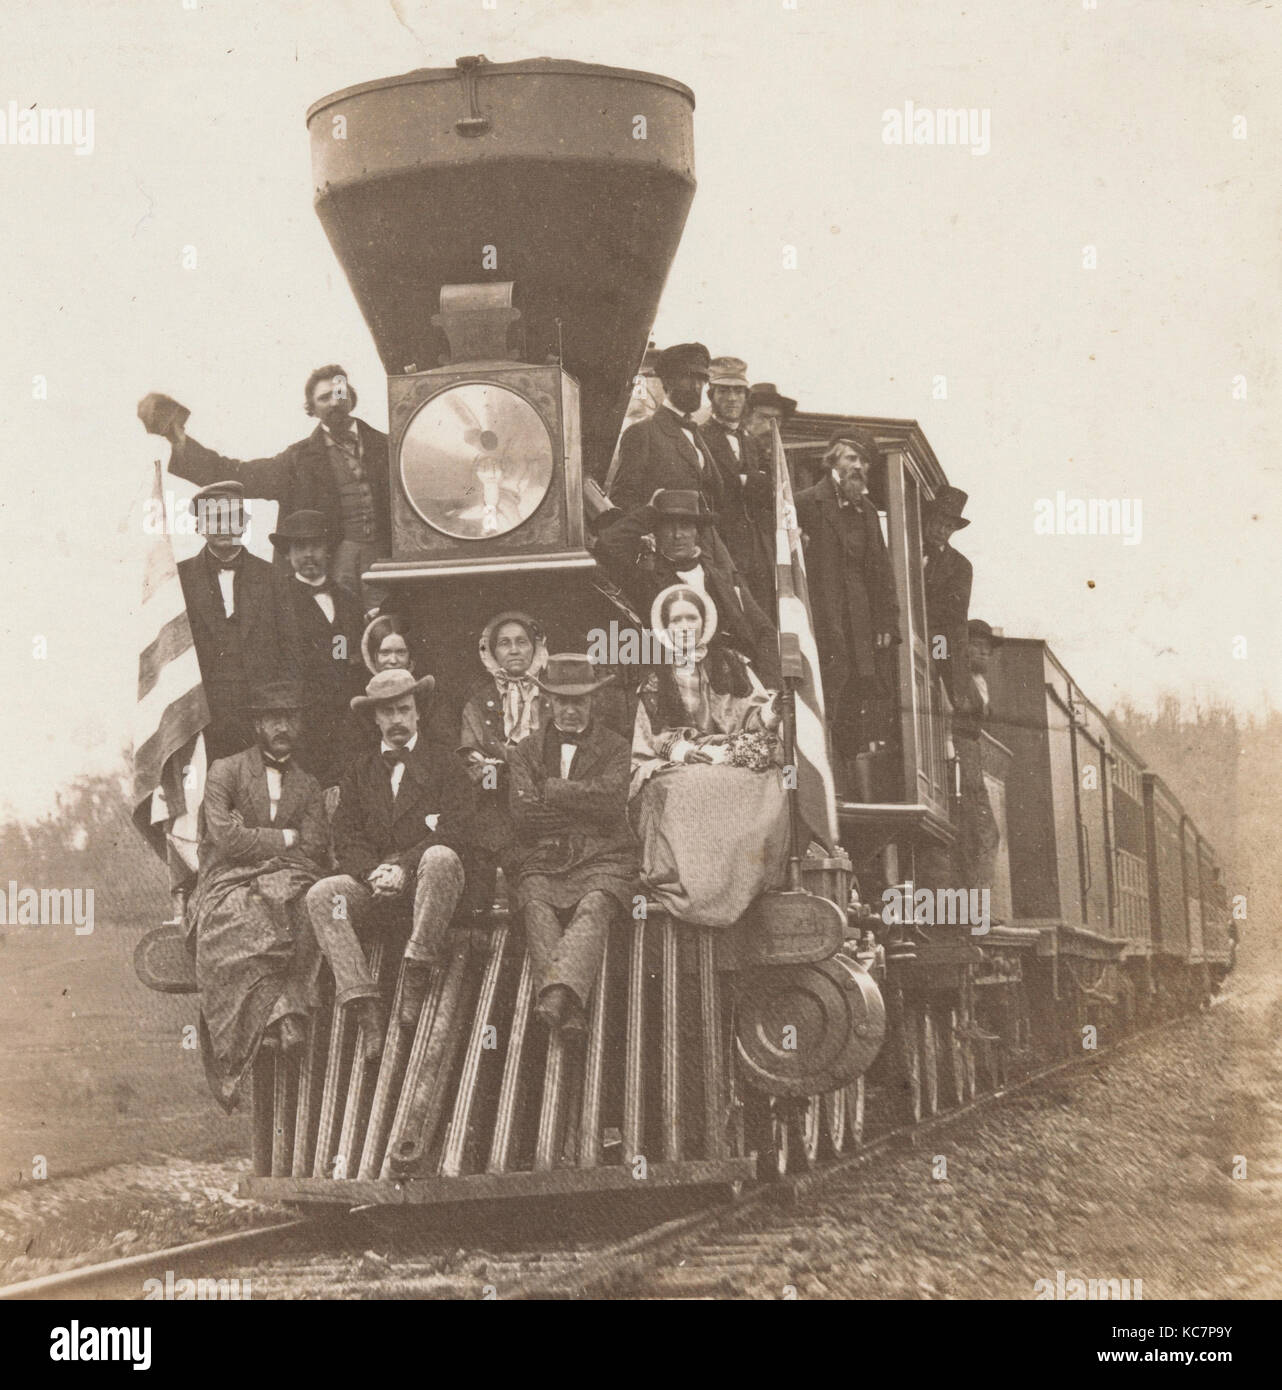 Locomotive on the Baltimore and Ohio Railroad, Near Oakland, Maryland, Unknown, ca. 1860 - Stock Image